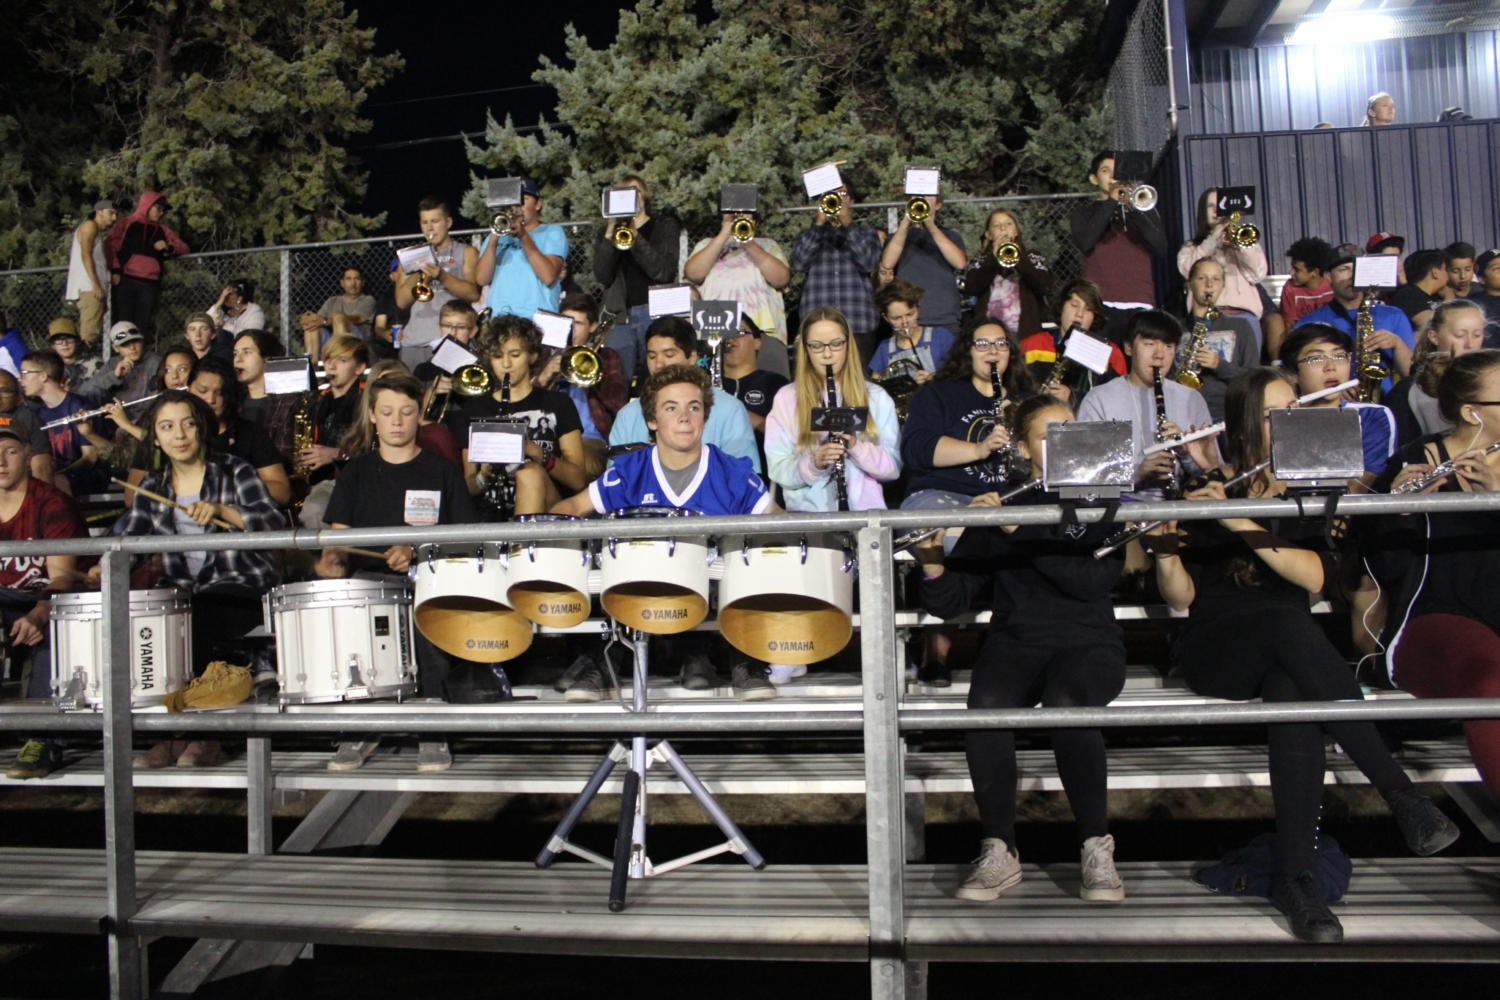 The Bishop Union High School band performs, their their proud music pumping up the crowd